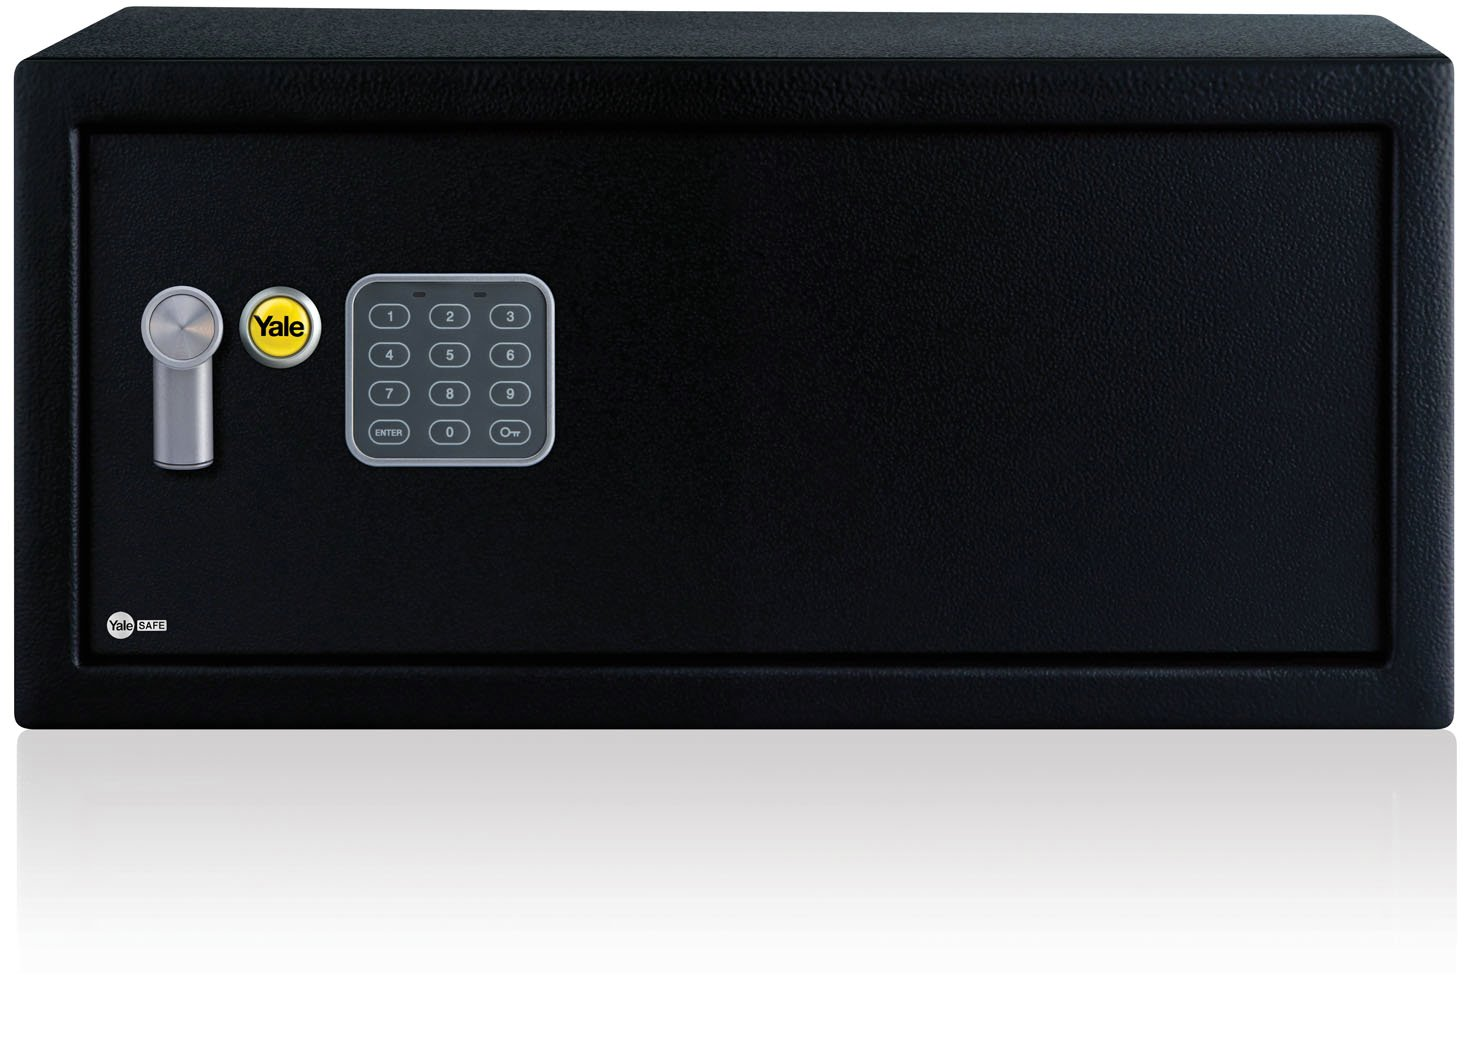 YLV/200/DB1 - Value Laptop Safe